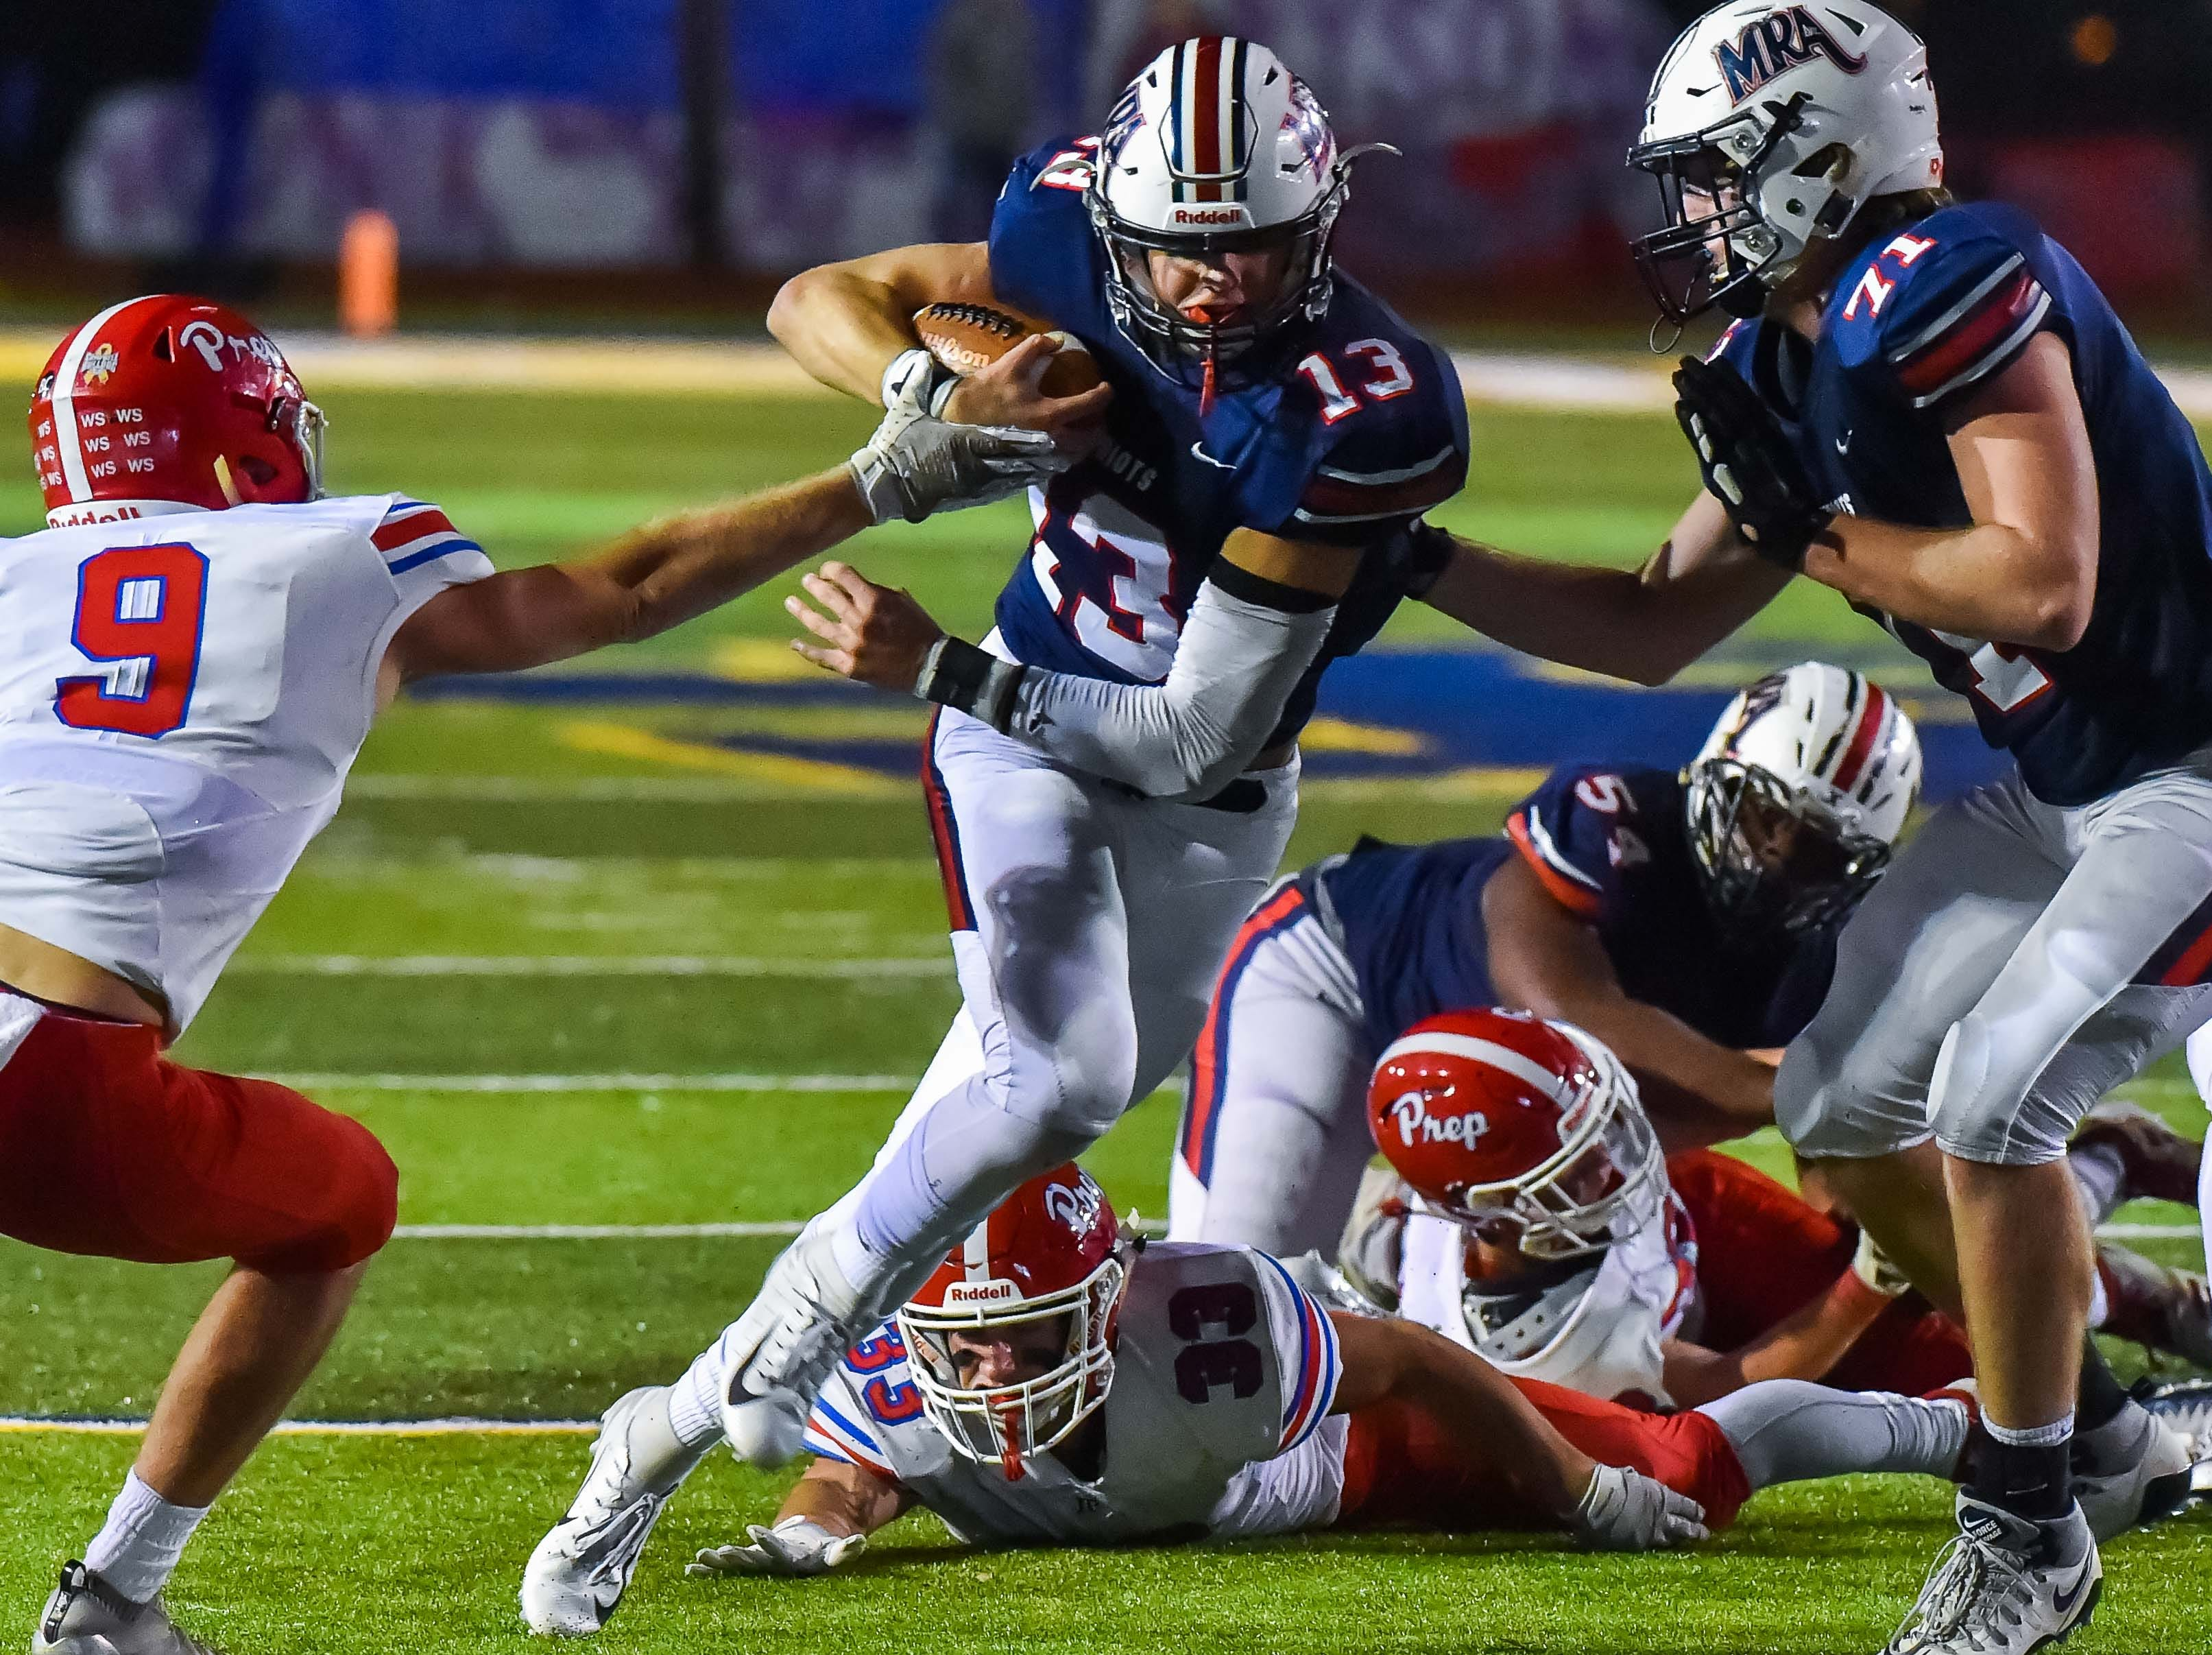 Madison Ridgeland Academy's William Milam (3) breaks a tackle on the way to a touchdown against Jackson Prep during the MAIS Class AAAA Championship Football game held at Jackson Academy in Jackson, MS, Thursday November 16, 2018.(Bob Smith-For The Clarion Ledger)